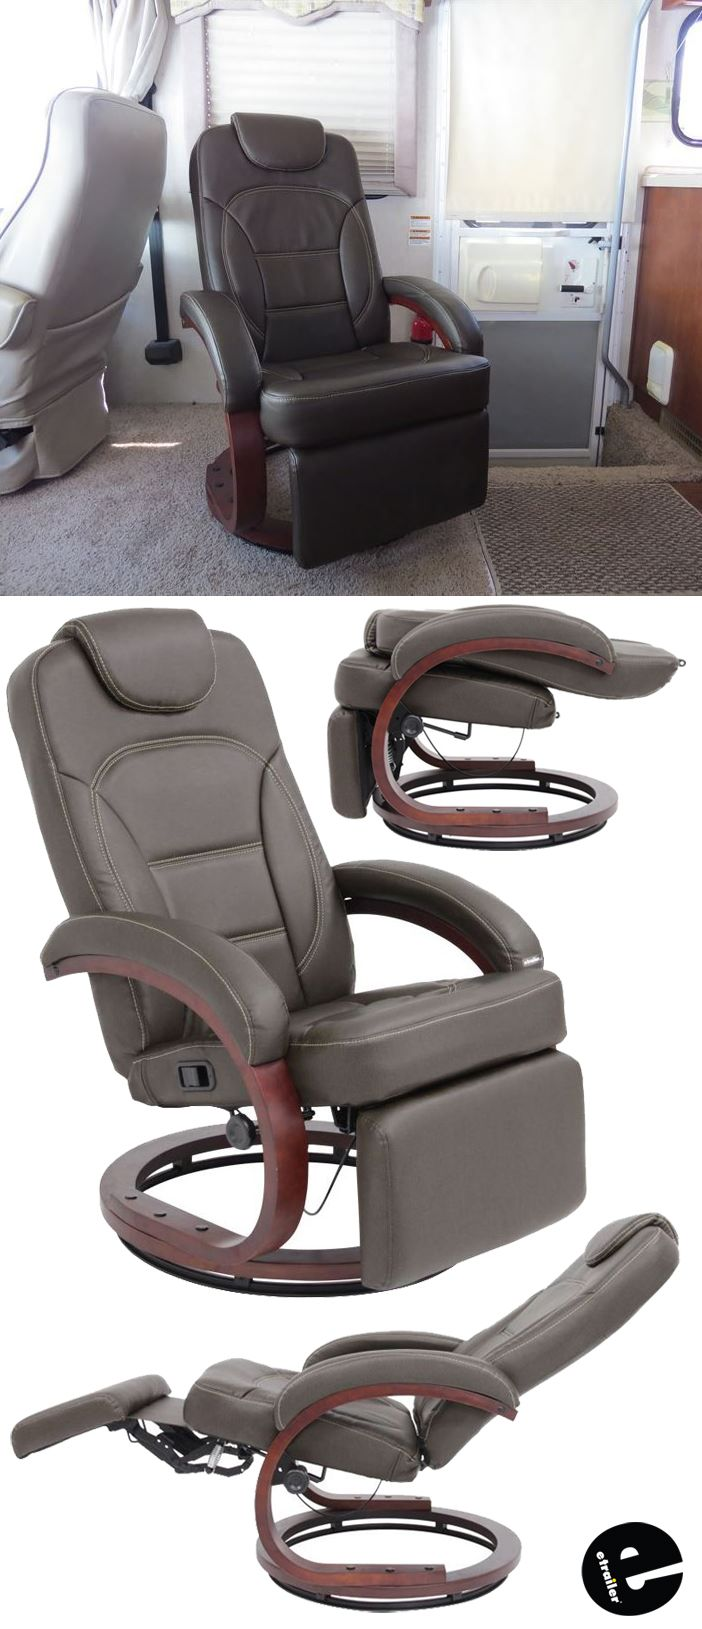 easy chairs with footrests wheelchair lady thomas payne euro rv recliner chair w footrest 20 seat width brookwood chestnut interior pinterest and recliners